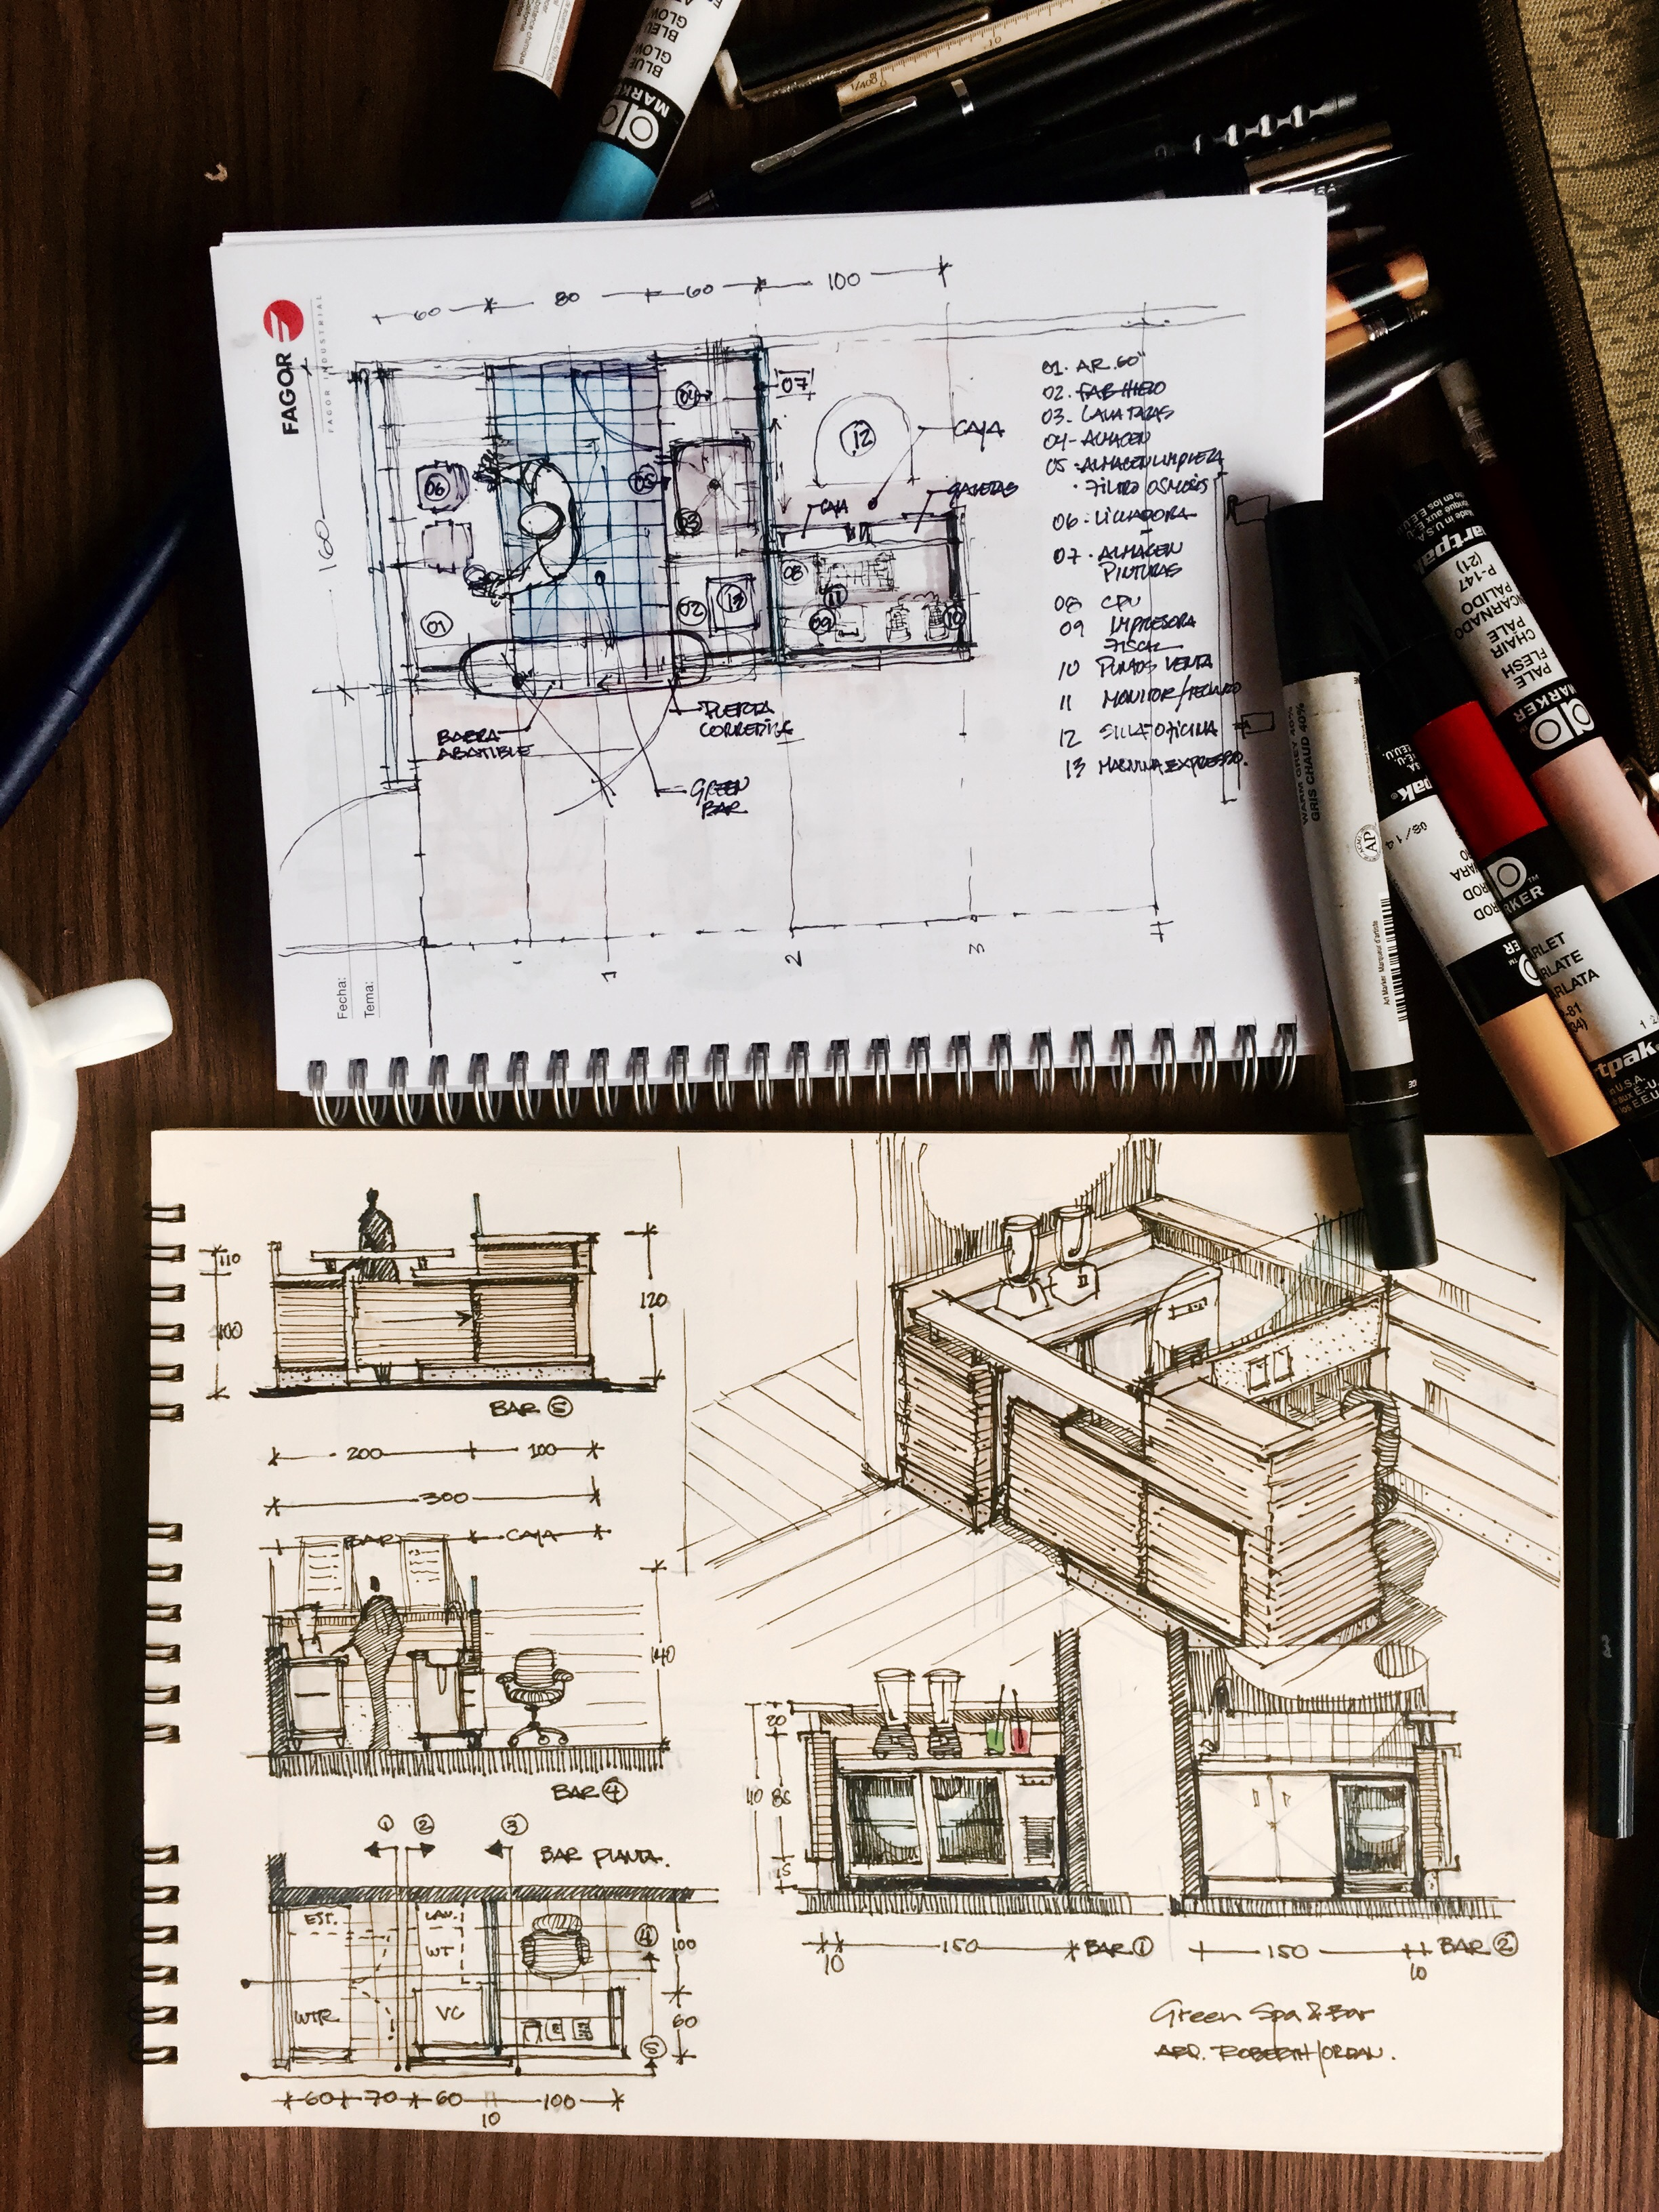 Two sketchbooks with markers showing furniture design sketches